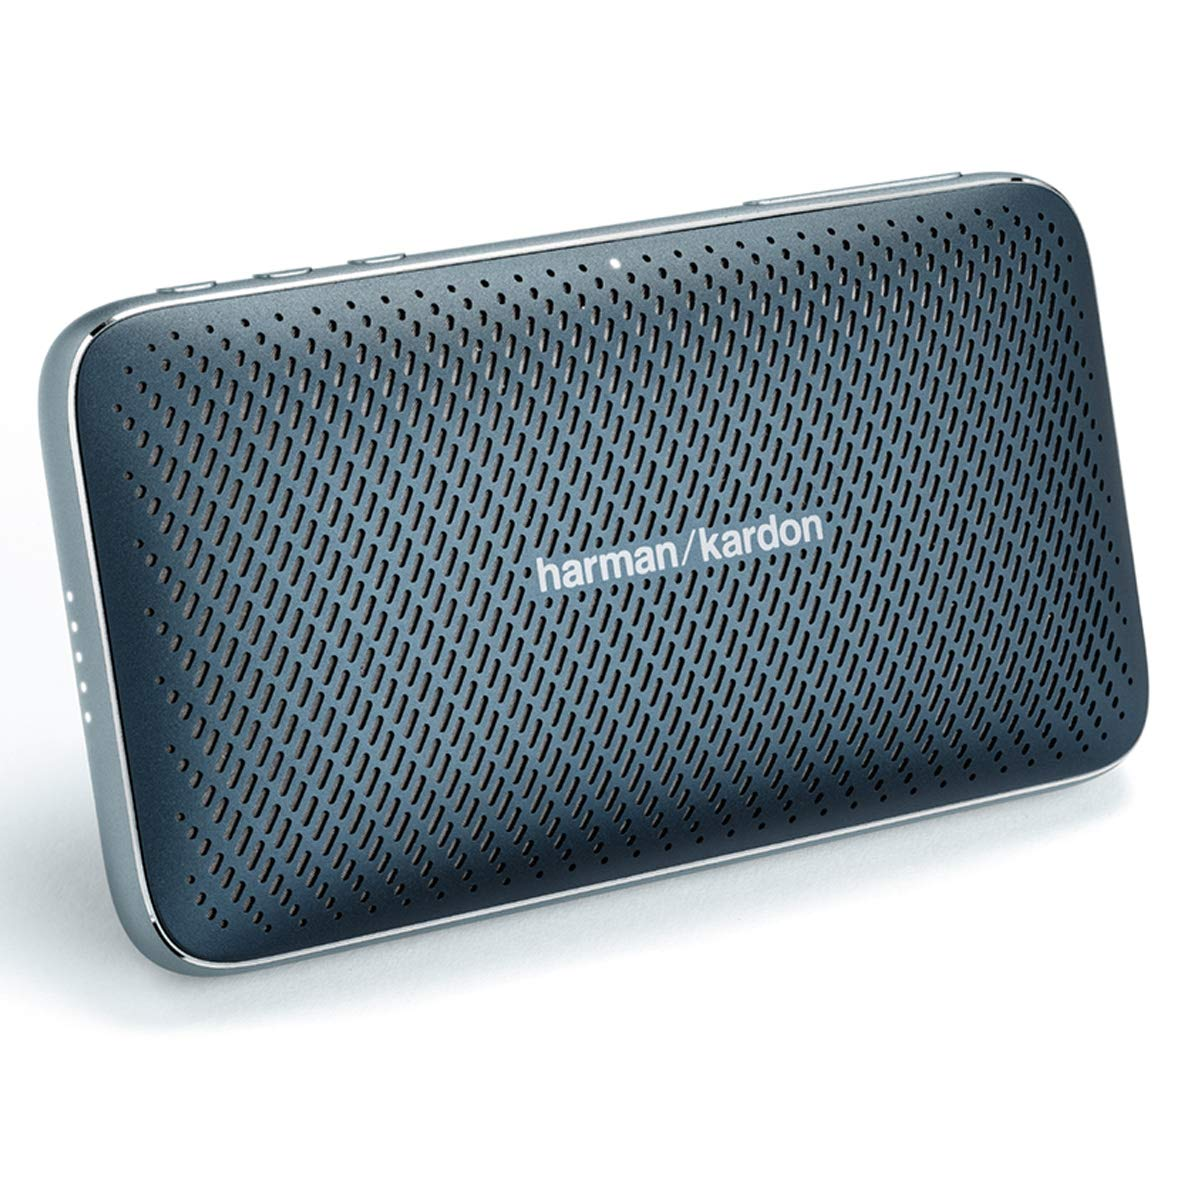 하만카톤 에스콰이어 미니2 포터블 블루투스 스피커 2종 Harman Kardon Esquire Mini 2 Ultra-Slim Portable Premium Bluetooth Speaker